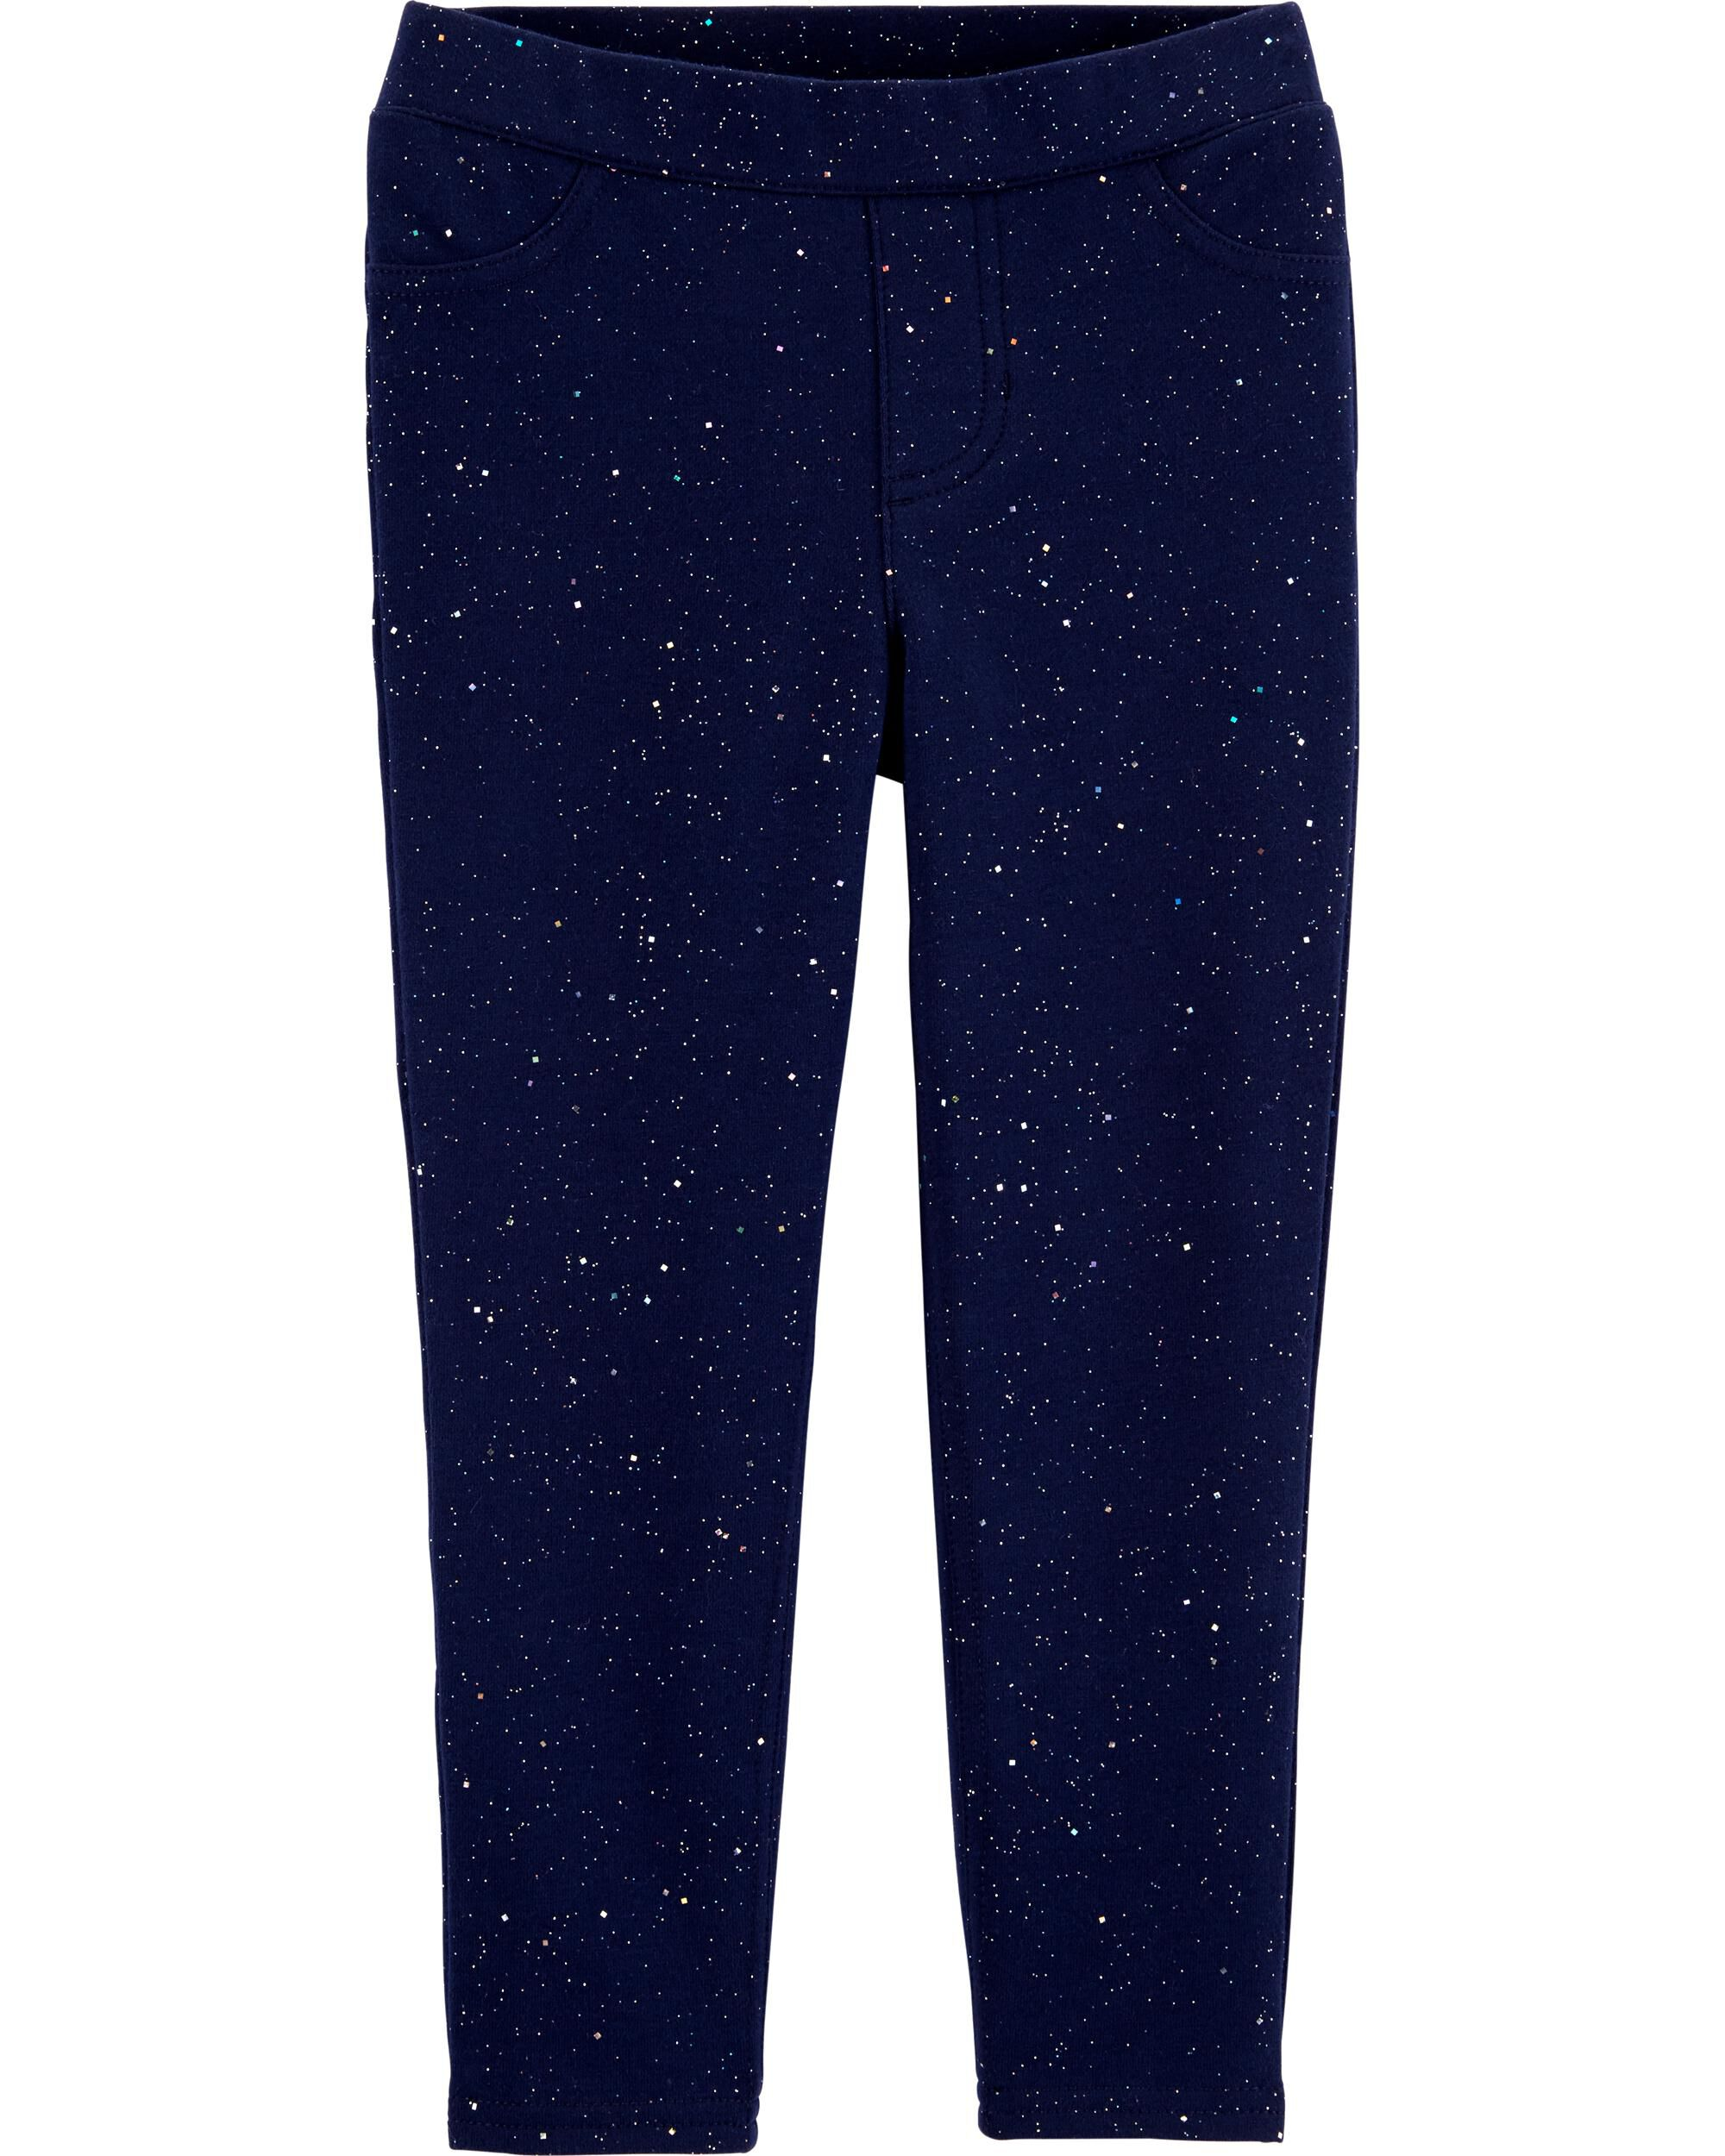 3M, Navy Grand Roses Carters Baby Girls French Terry Pants